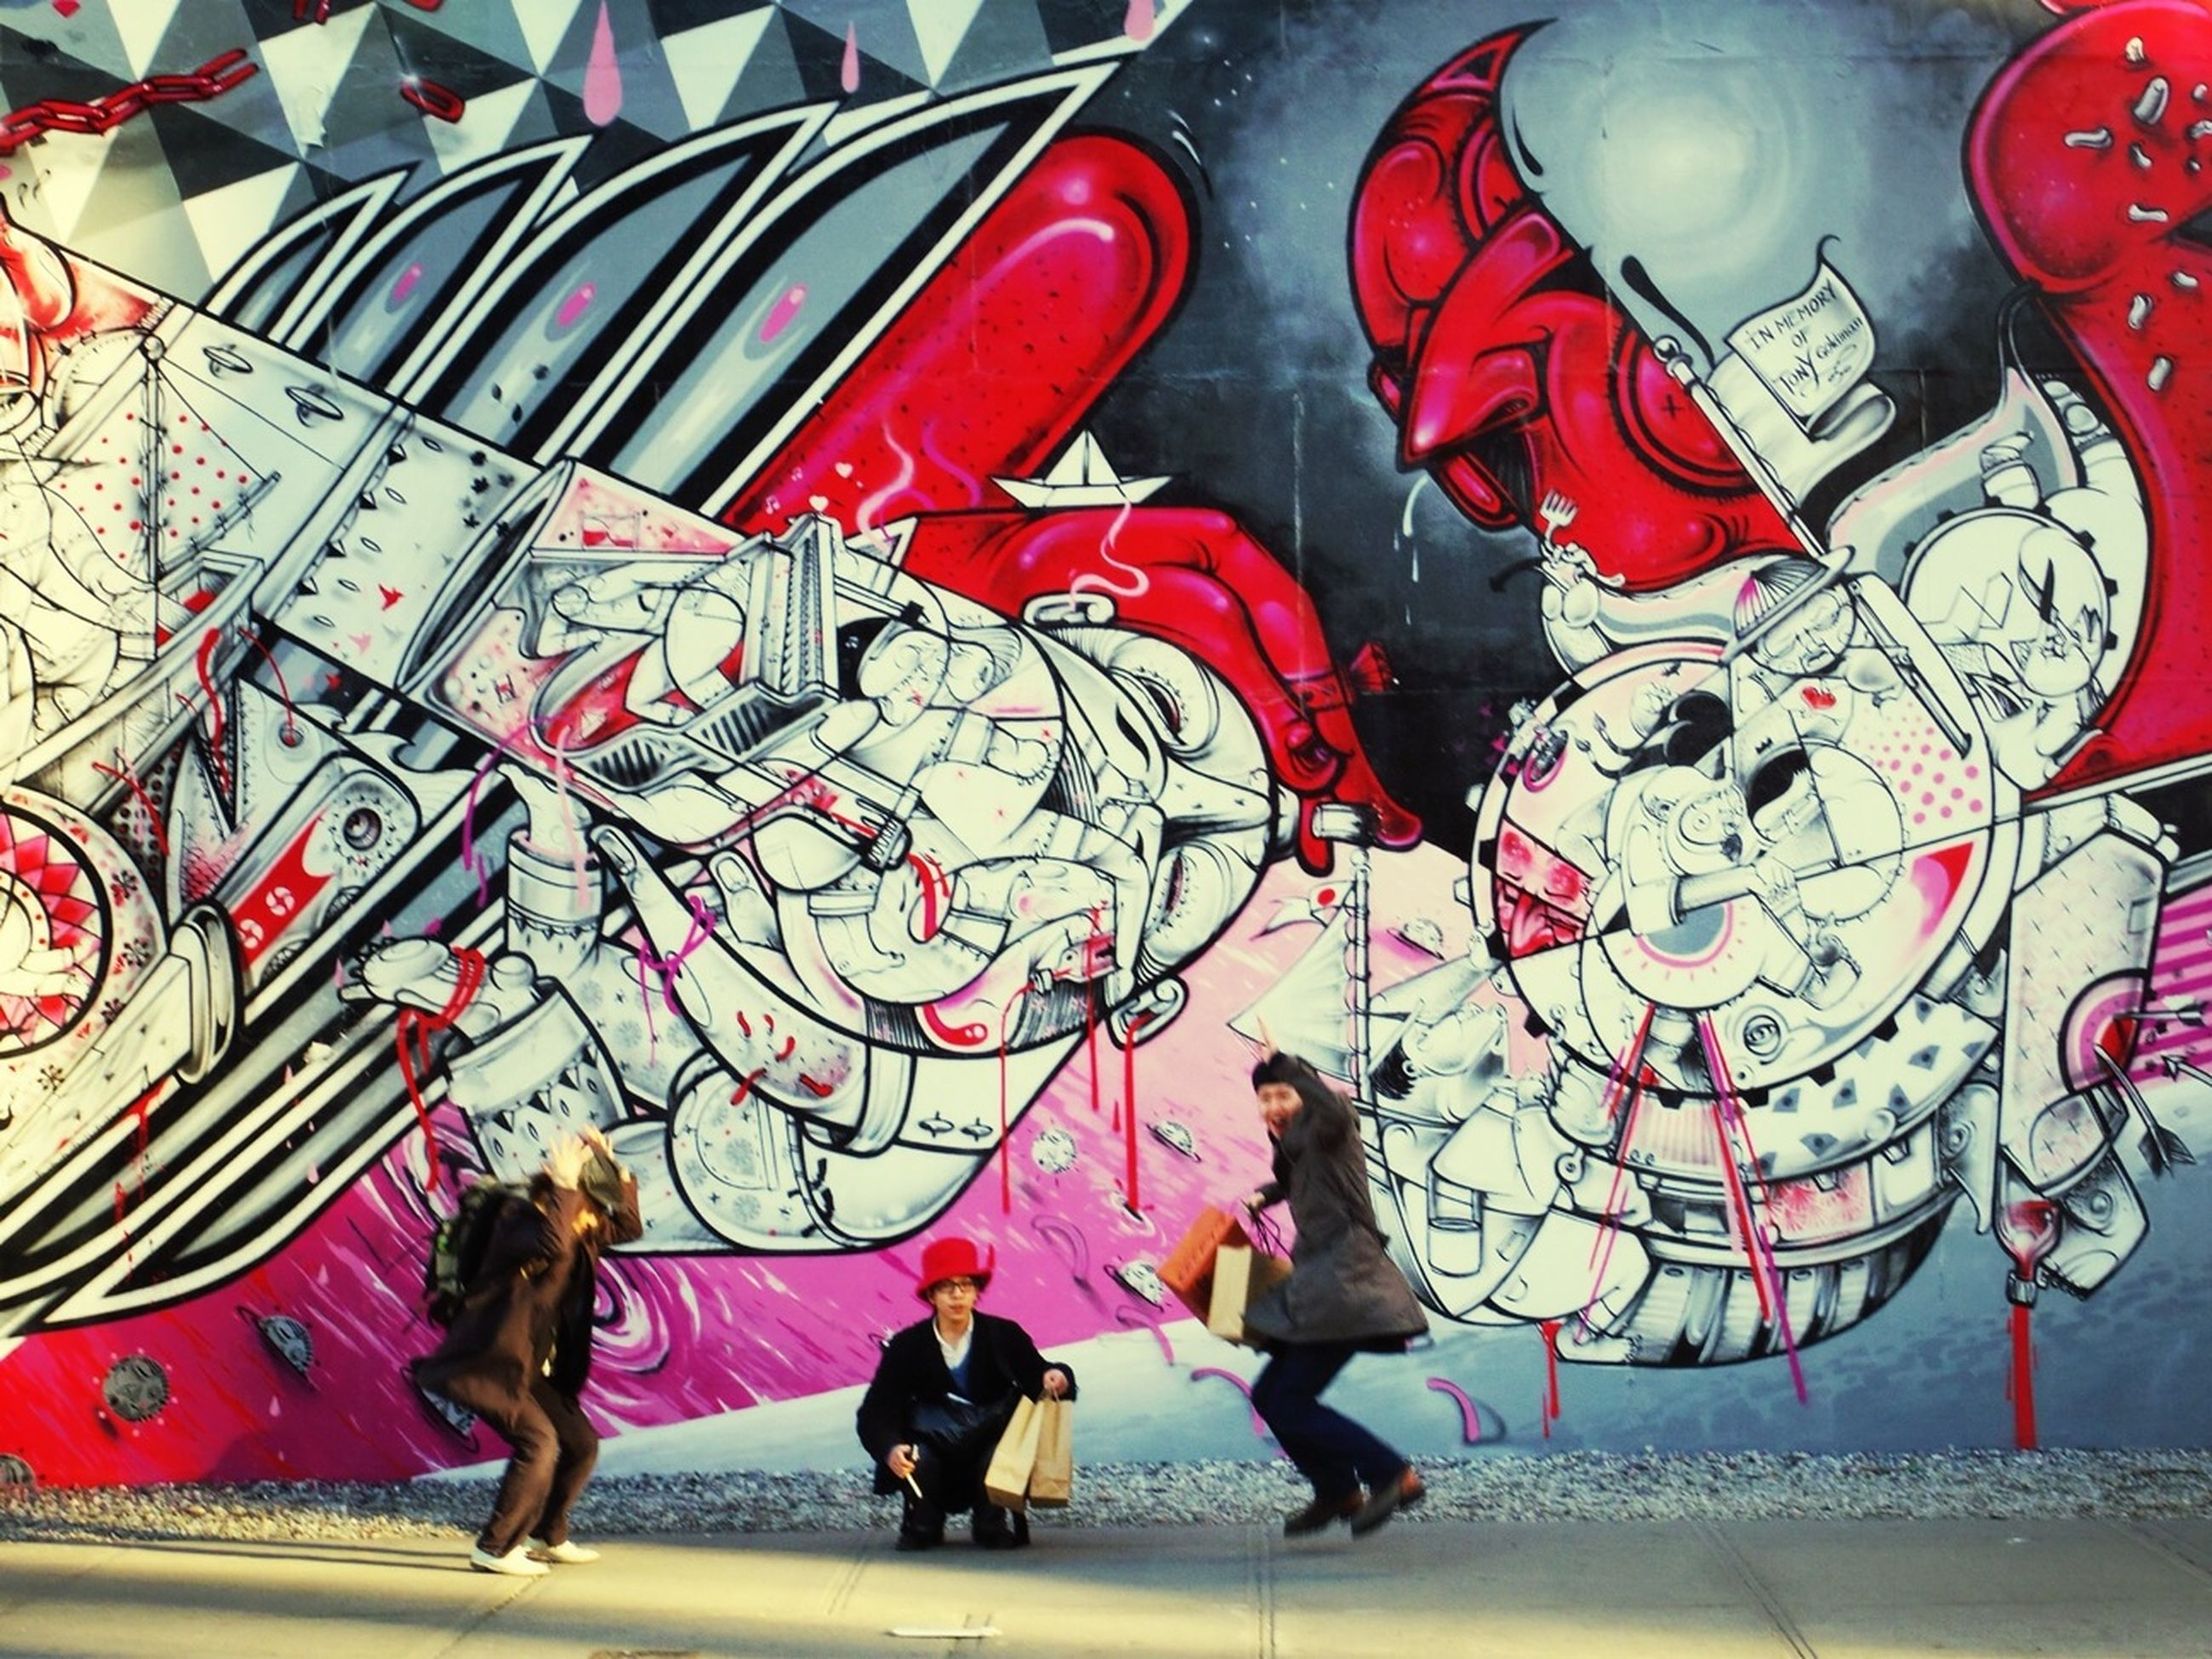 art, art and craft, creativity, graffiti, human representation, lifestyles, leisure activity, multi colored, red, animal representation, men, person, full length, built structure, cultures, wall - building feature, architecture, day